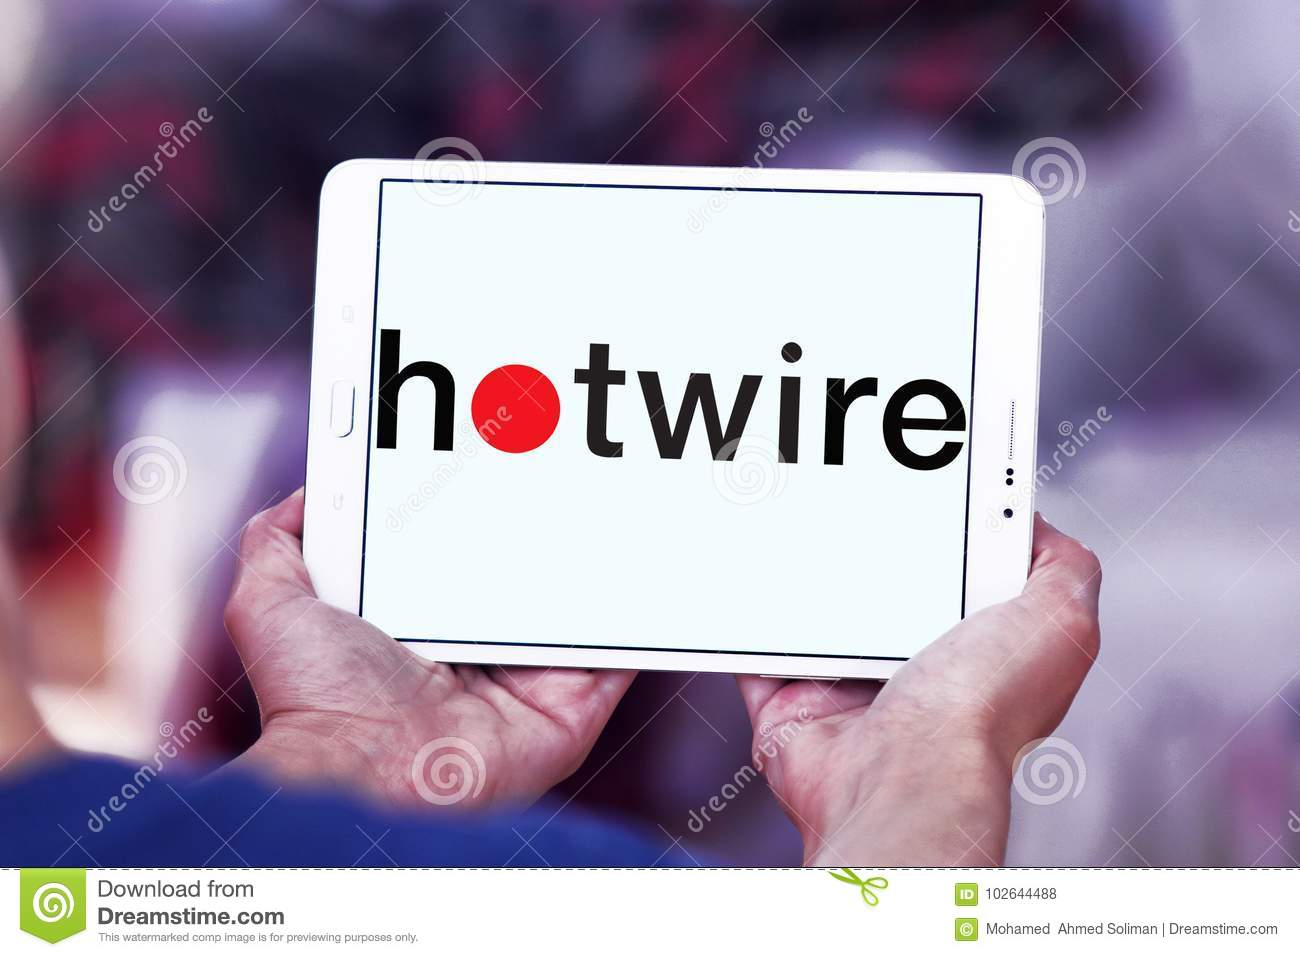 Hotwire Company Logo Editorial Stock Photo. Image Of